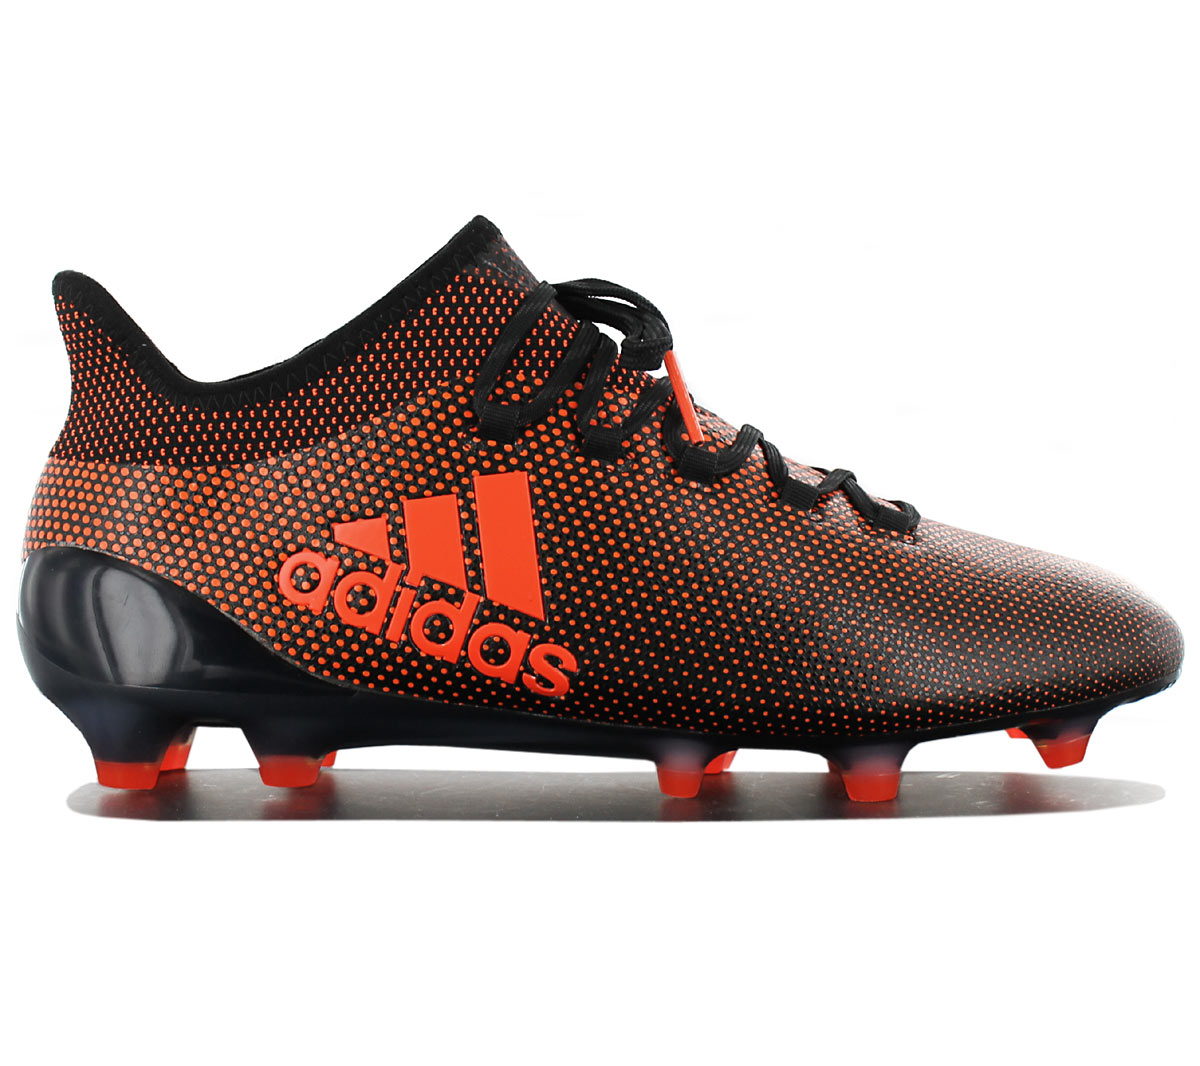 detailed look 8c56a 33039 Details about Adidas x 17.1 Fg Men's Cleats Football Shoes Black Orange Ace  S82288 New